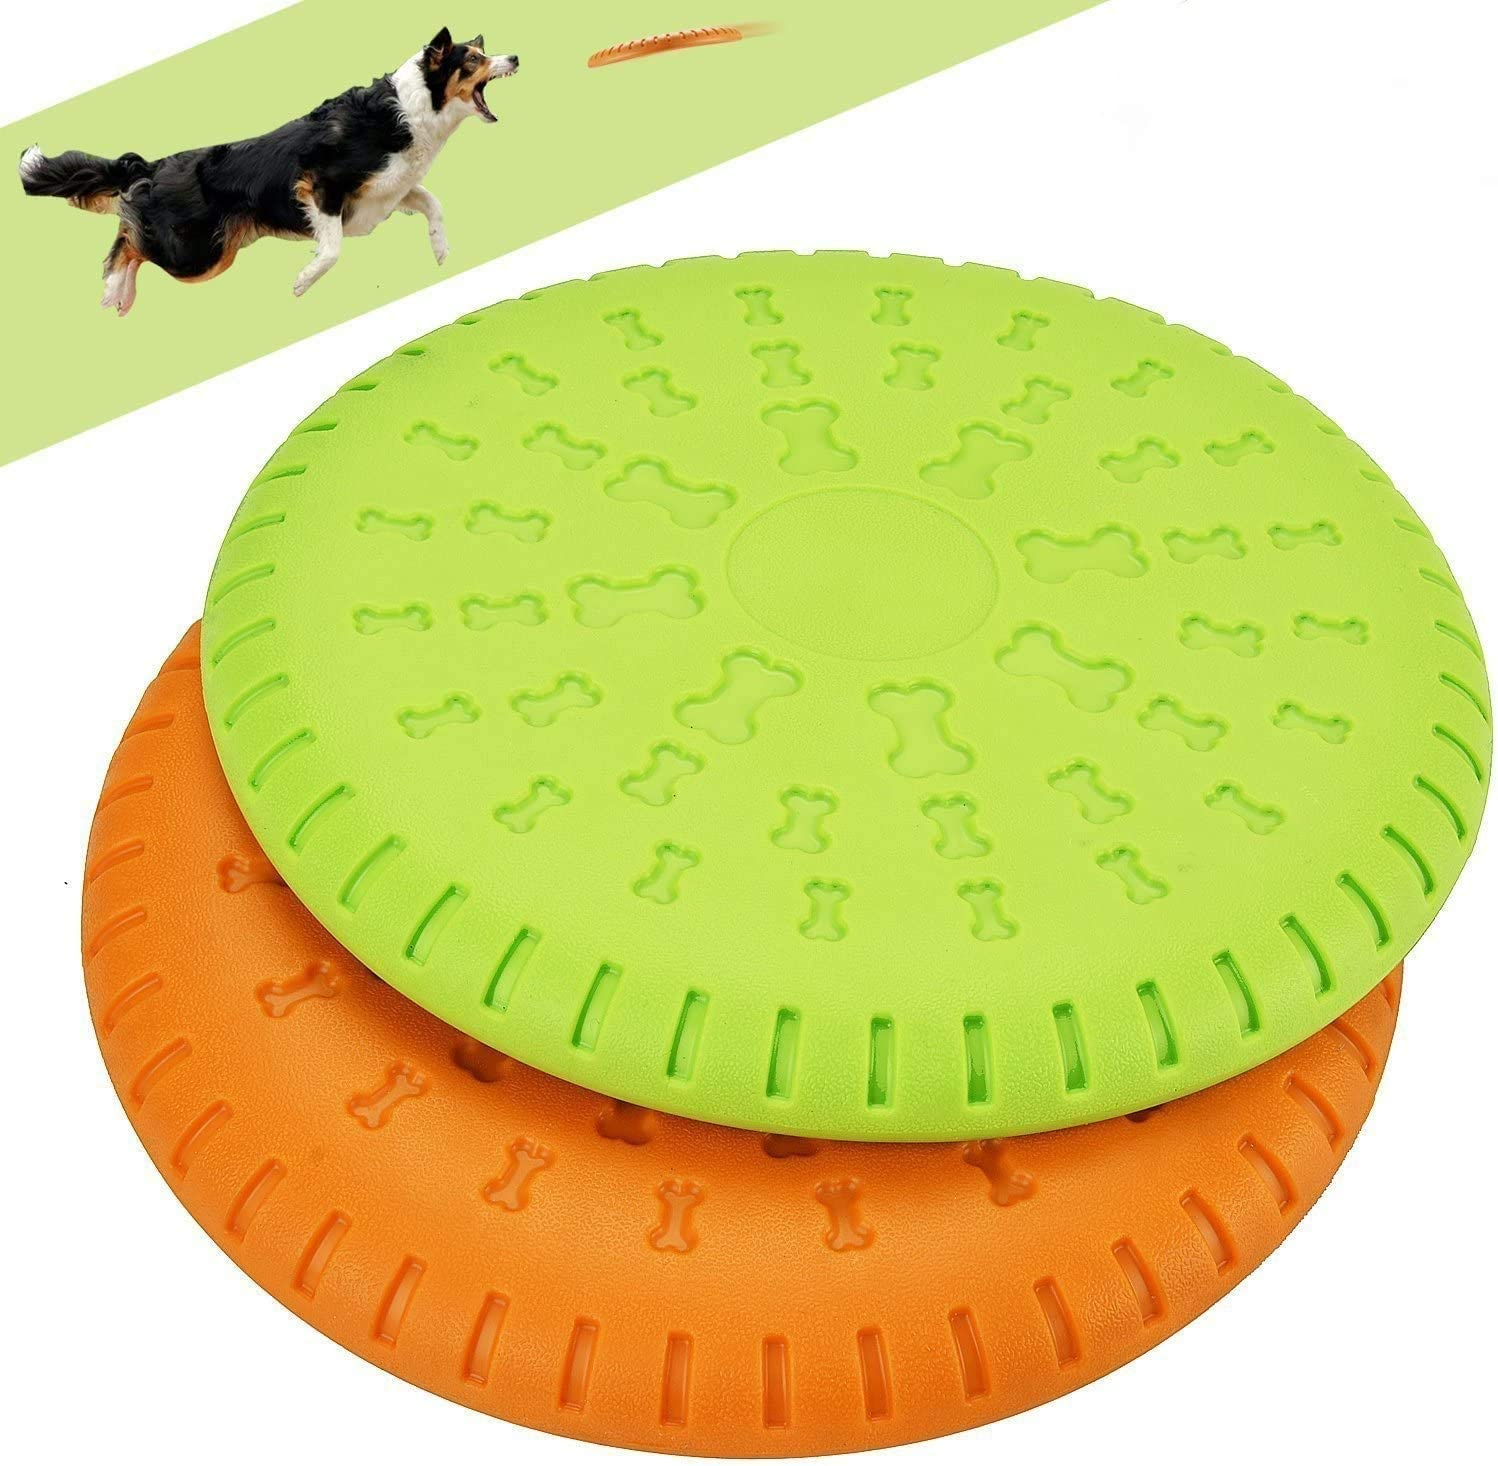 Legendog 2 4 years warranty Pcs Dog Flying Disc Rubber Ranking TOP4 Large D Catcher Toy 9 Inch